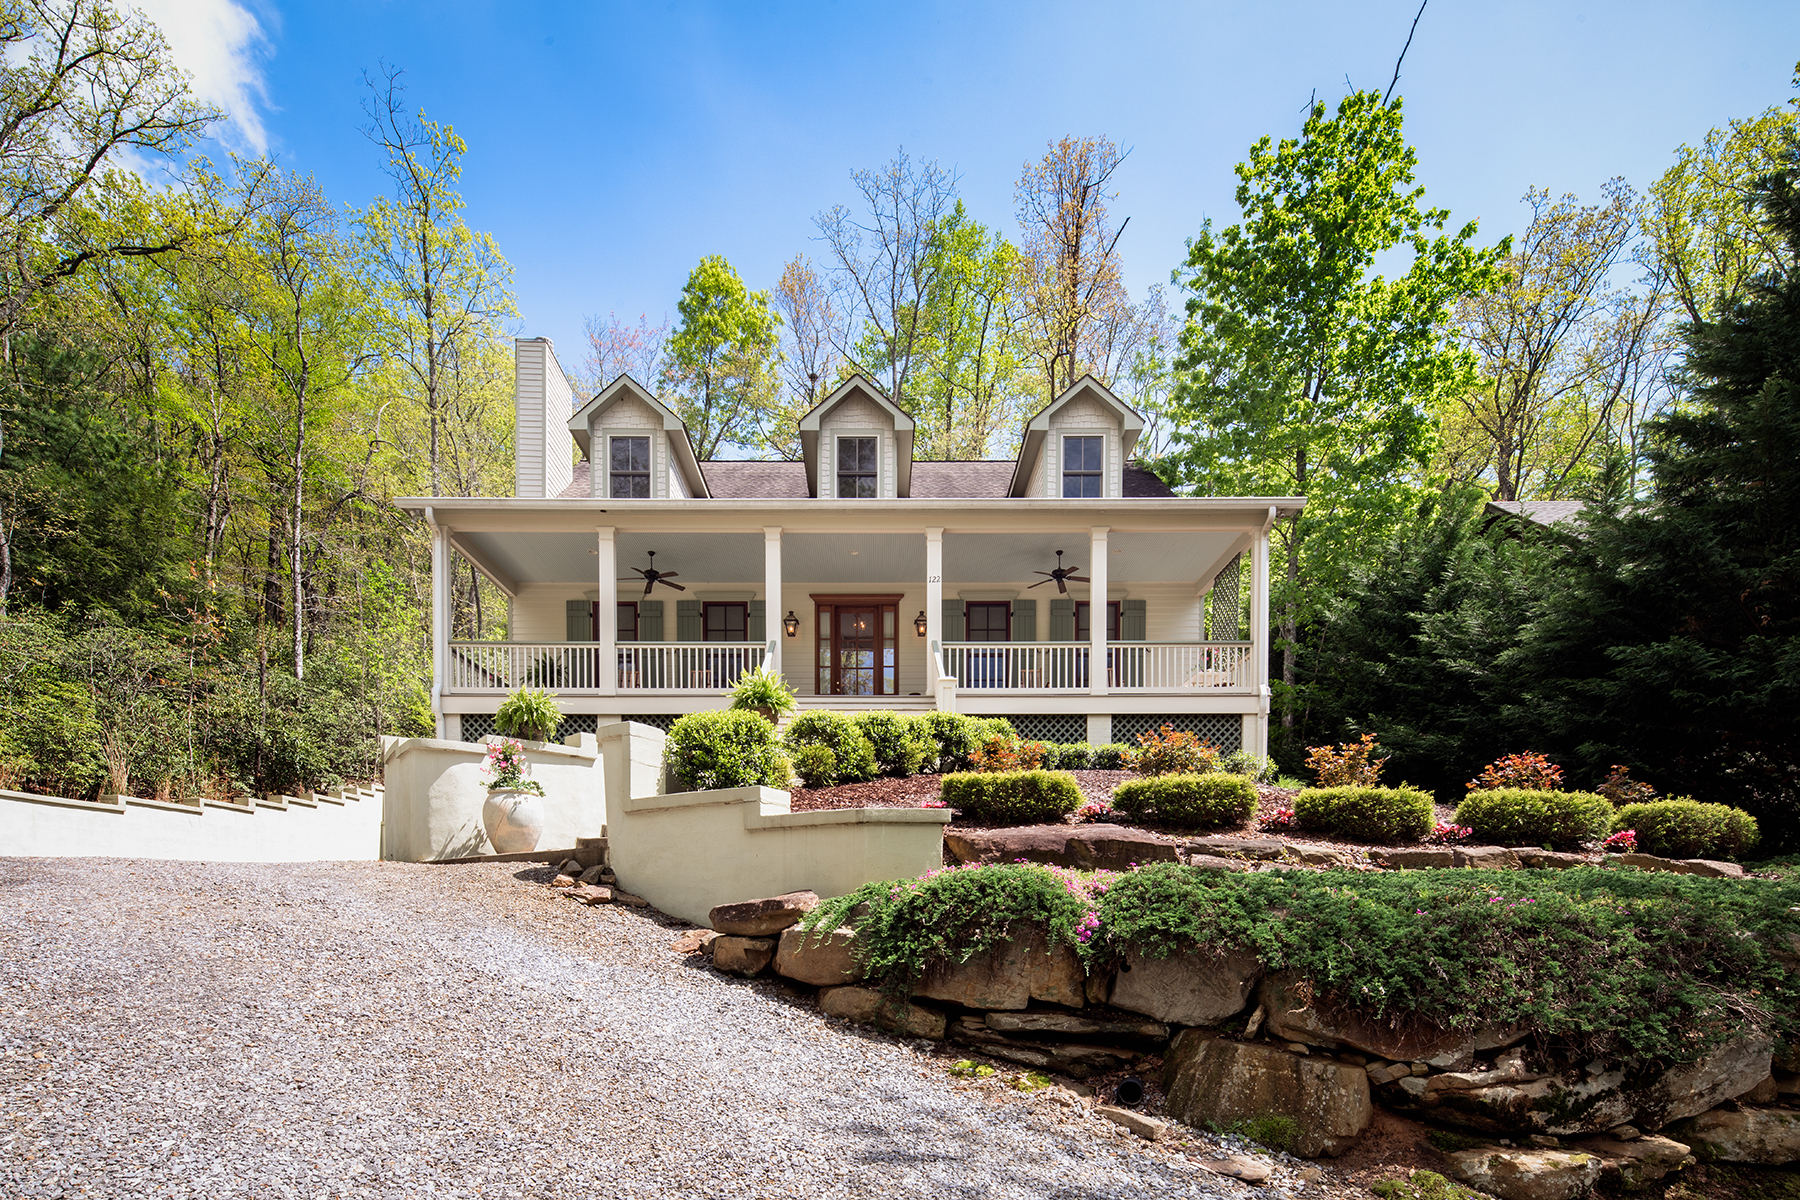 Single Family Home for Sale at MONTREAT 122 Shenandoah Terr, Montreat, North Carolina 28757 United States